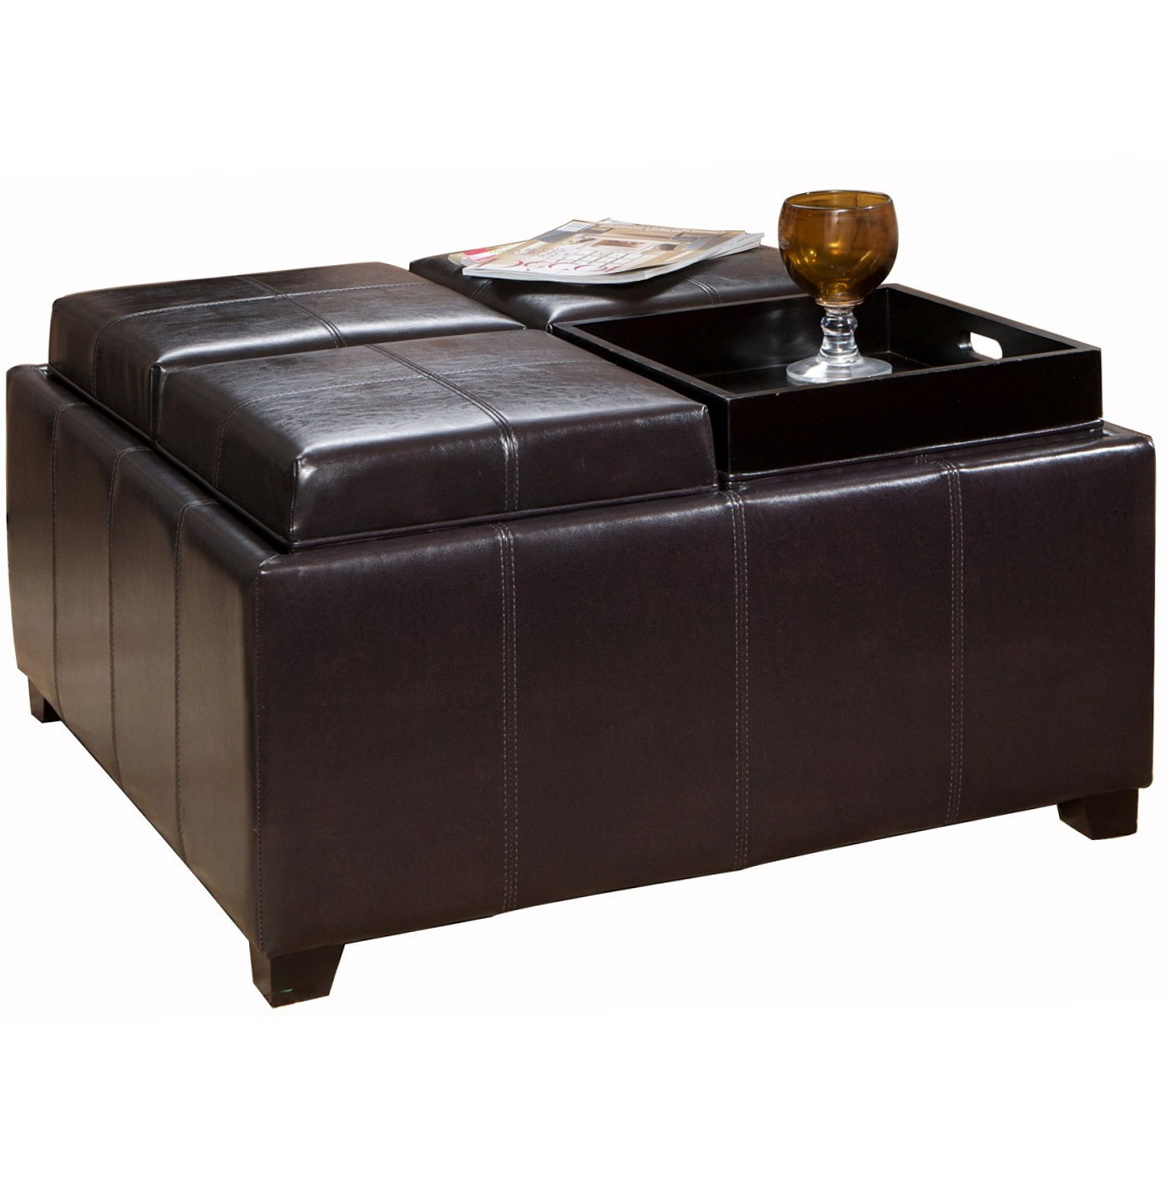 Ottoman Coffee Table Tray Uk: Leather Ottoman Coffee Tables